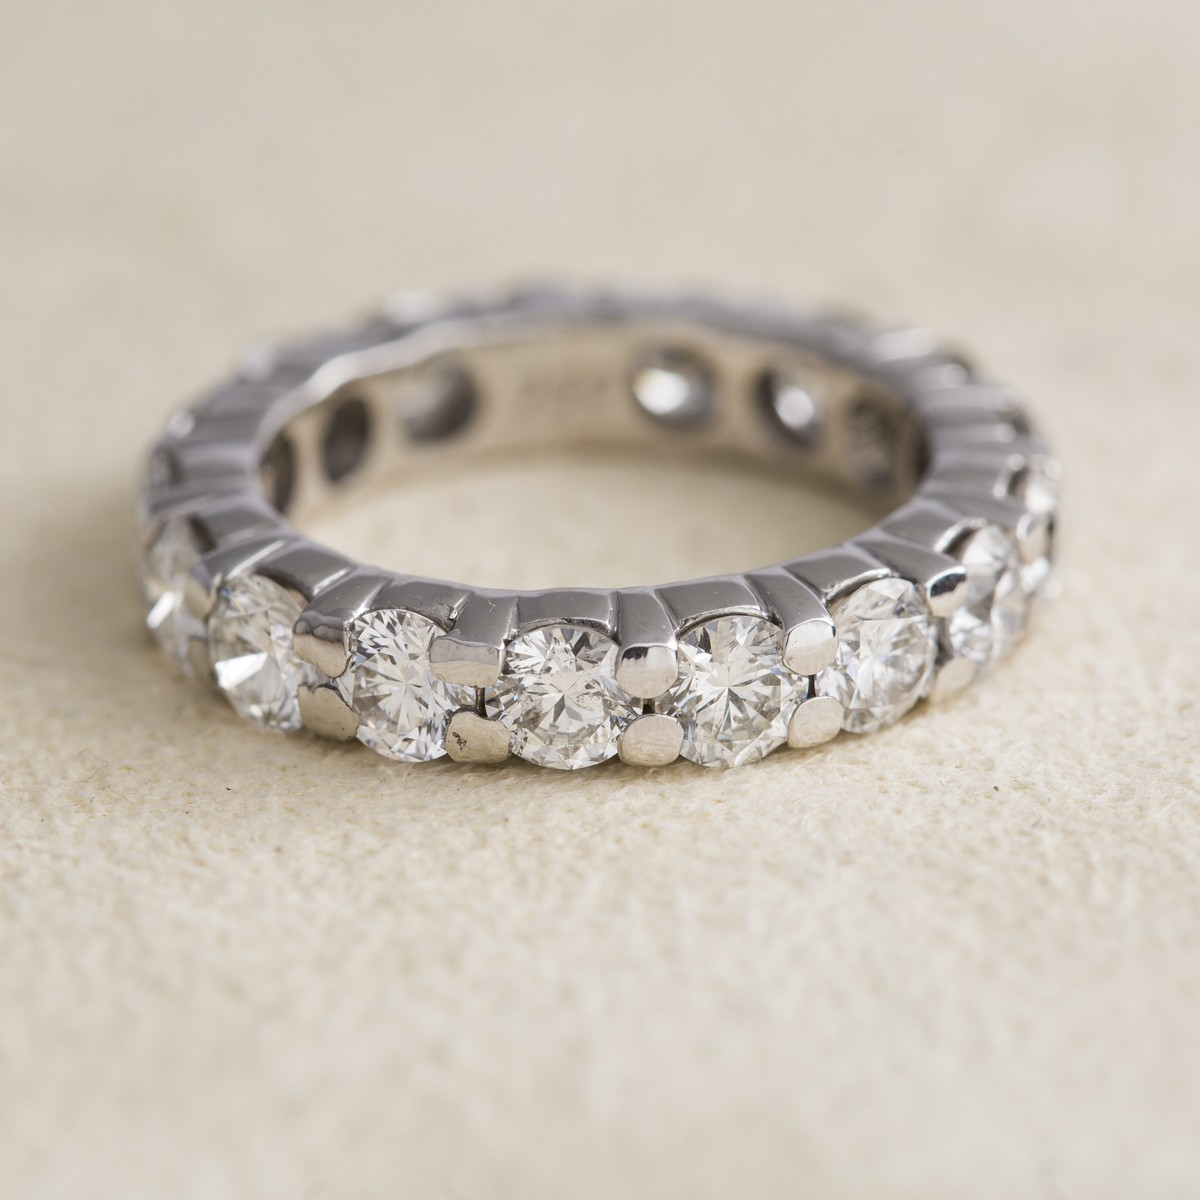 Vintage 18k White Gold and Diamond Eternity Band